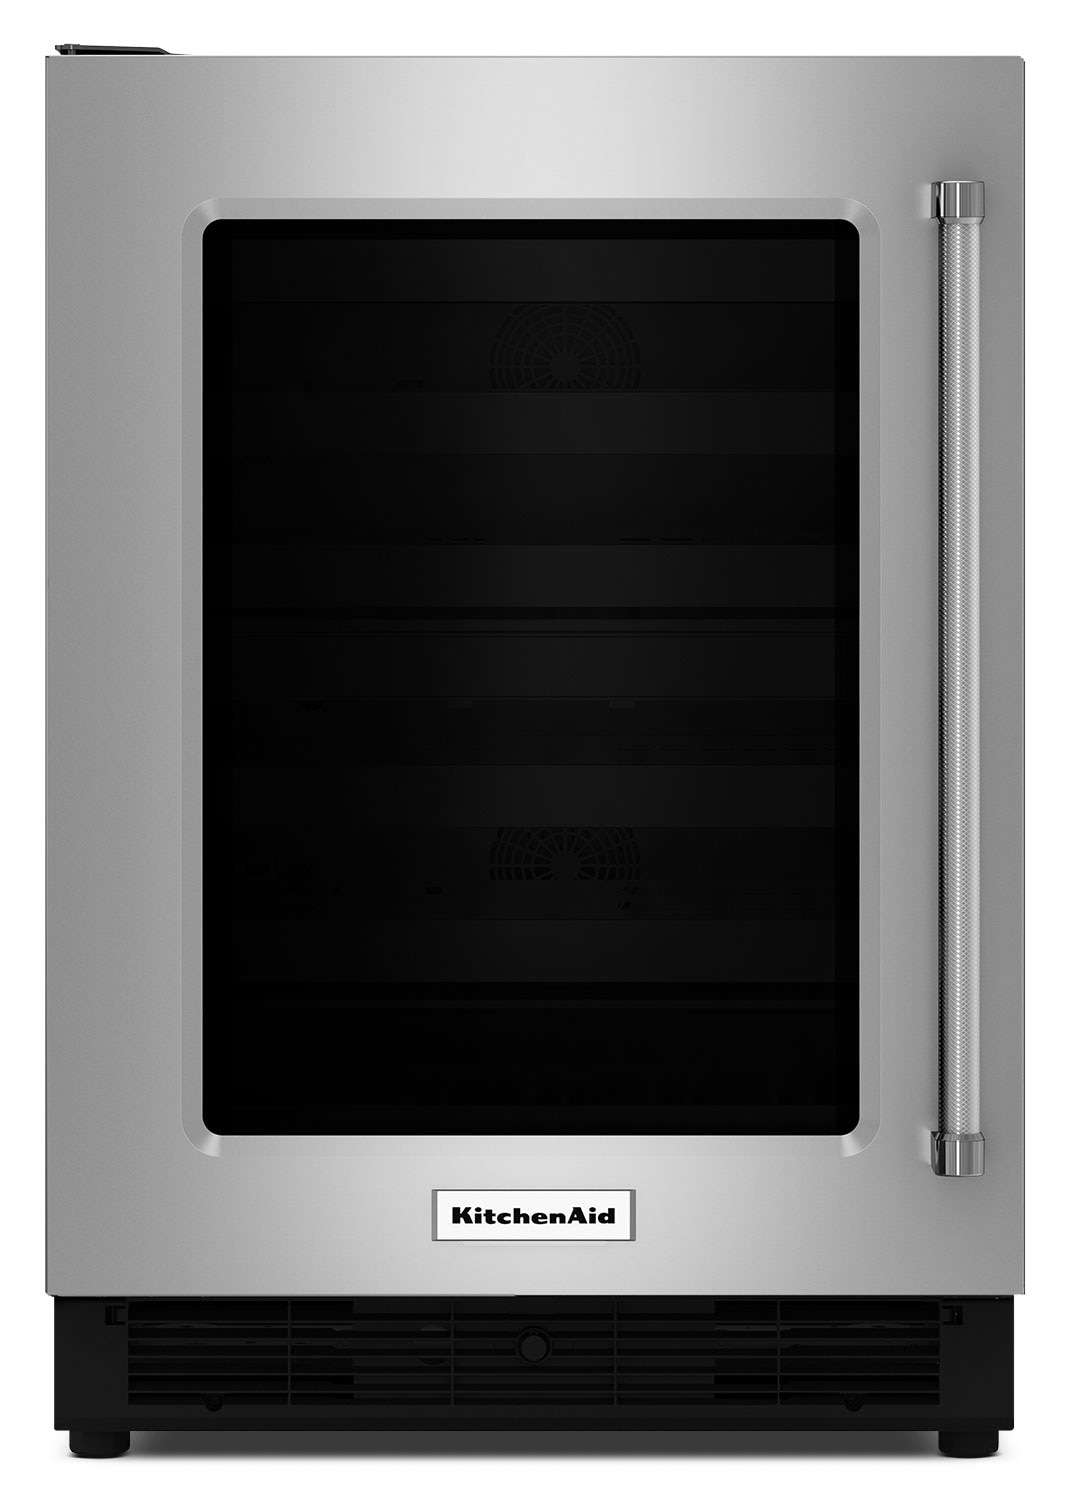 Refrigerators and Freezers - KitchenAid 5.1 Cu. Ft. Glass-Door Undercounter Refrigerator with Left-Door Swing – Stainless Steel